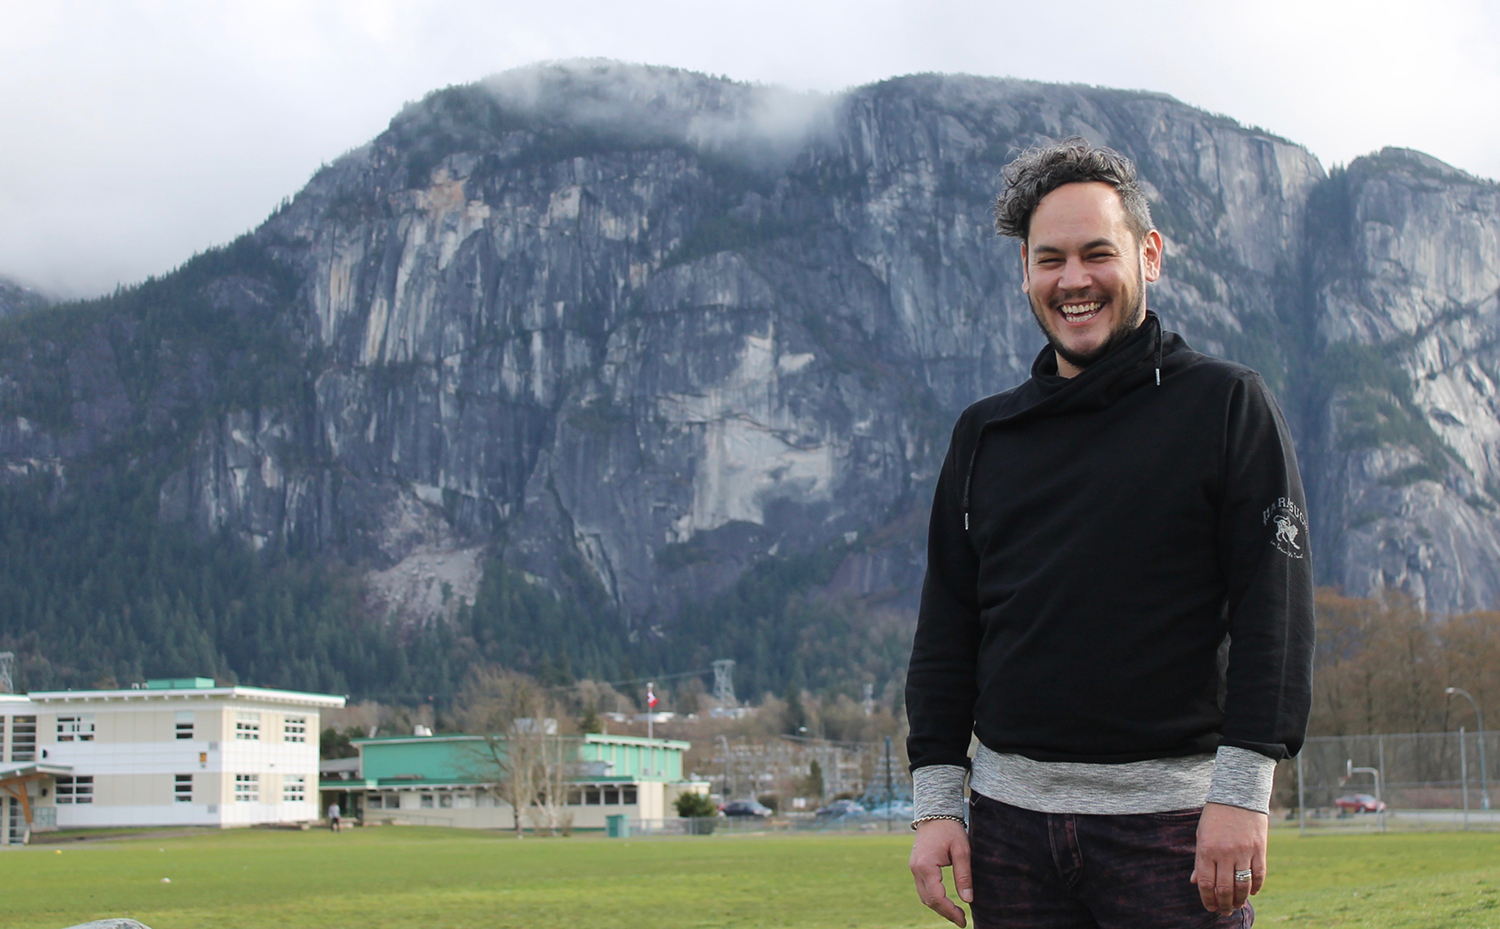 Indigenous man overcomes homophobia to co-found first LGBTQ+ group in Squamish